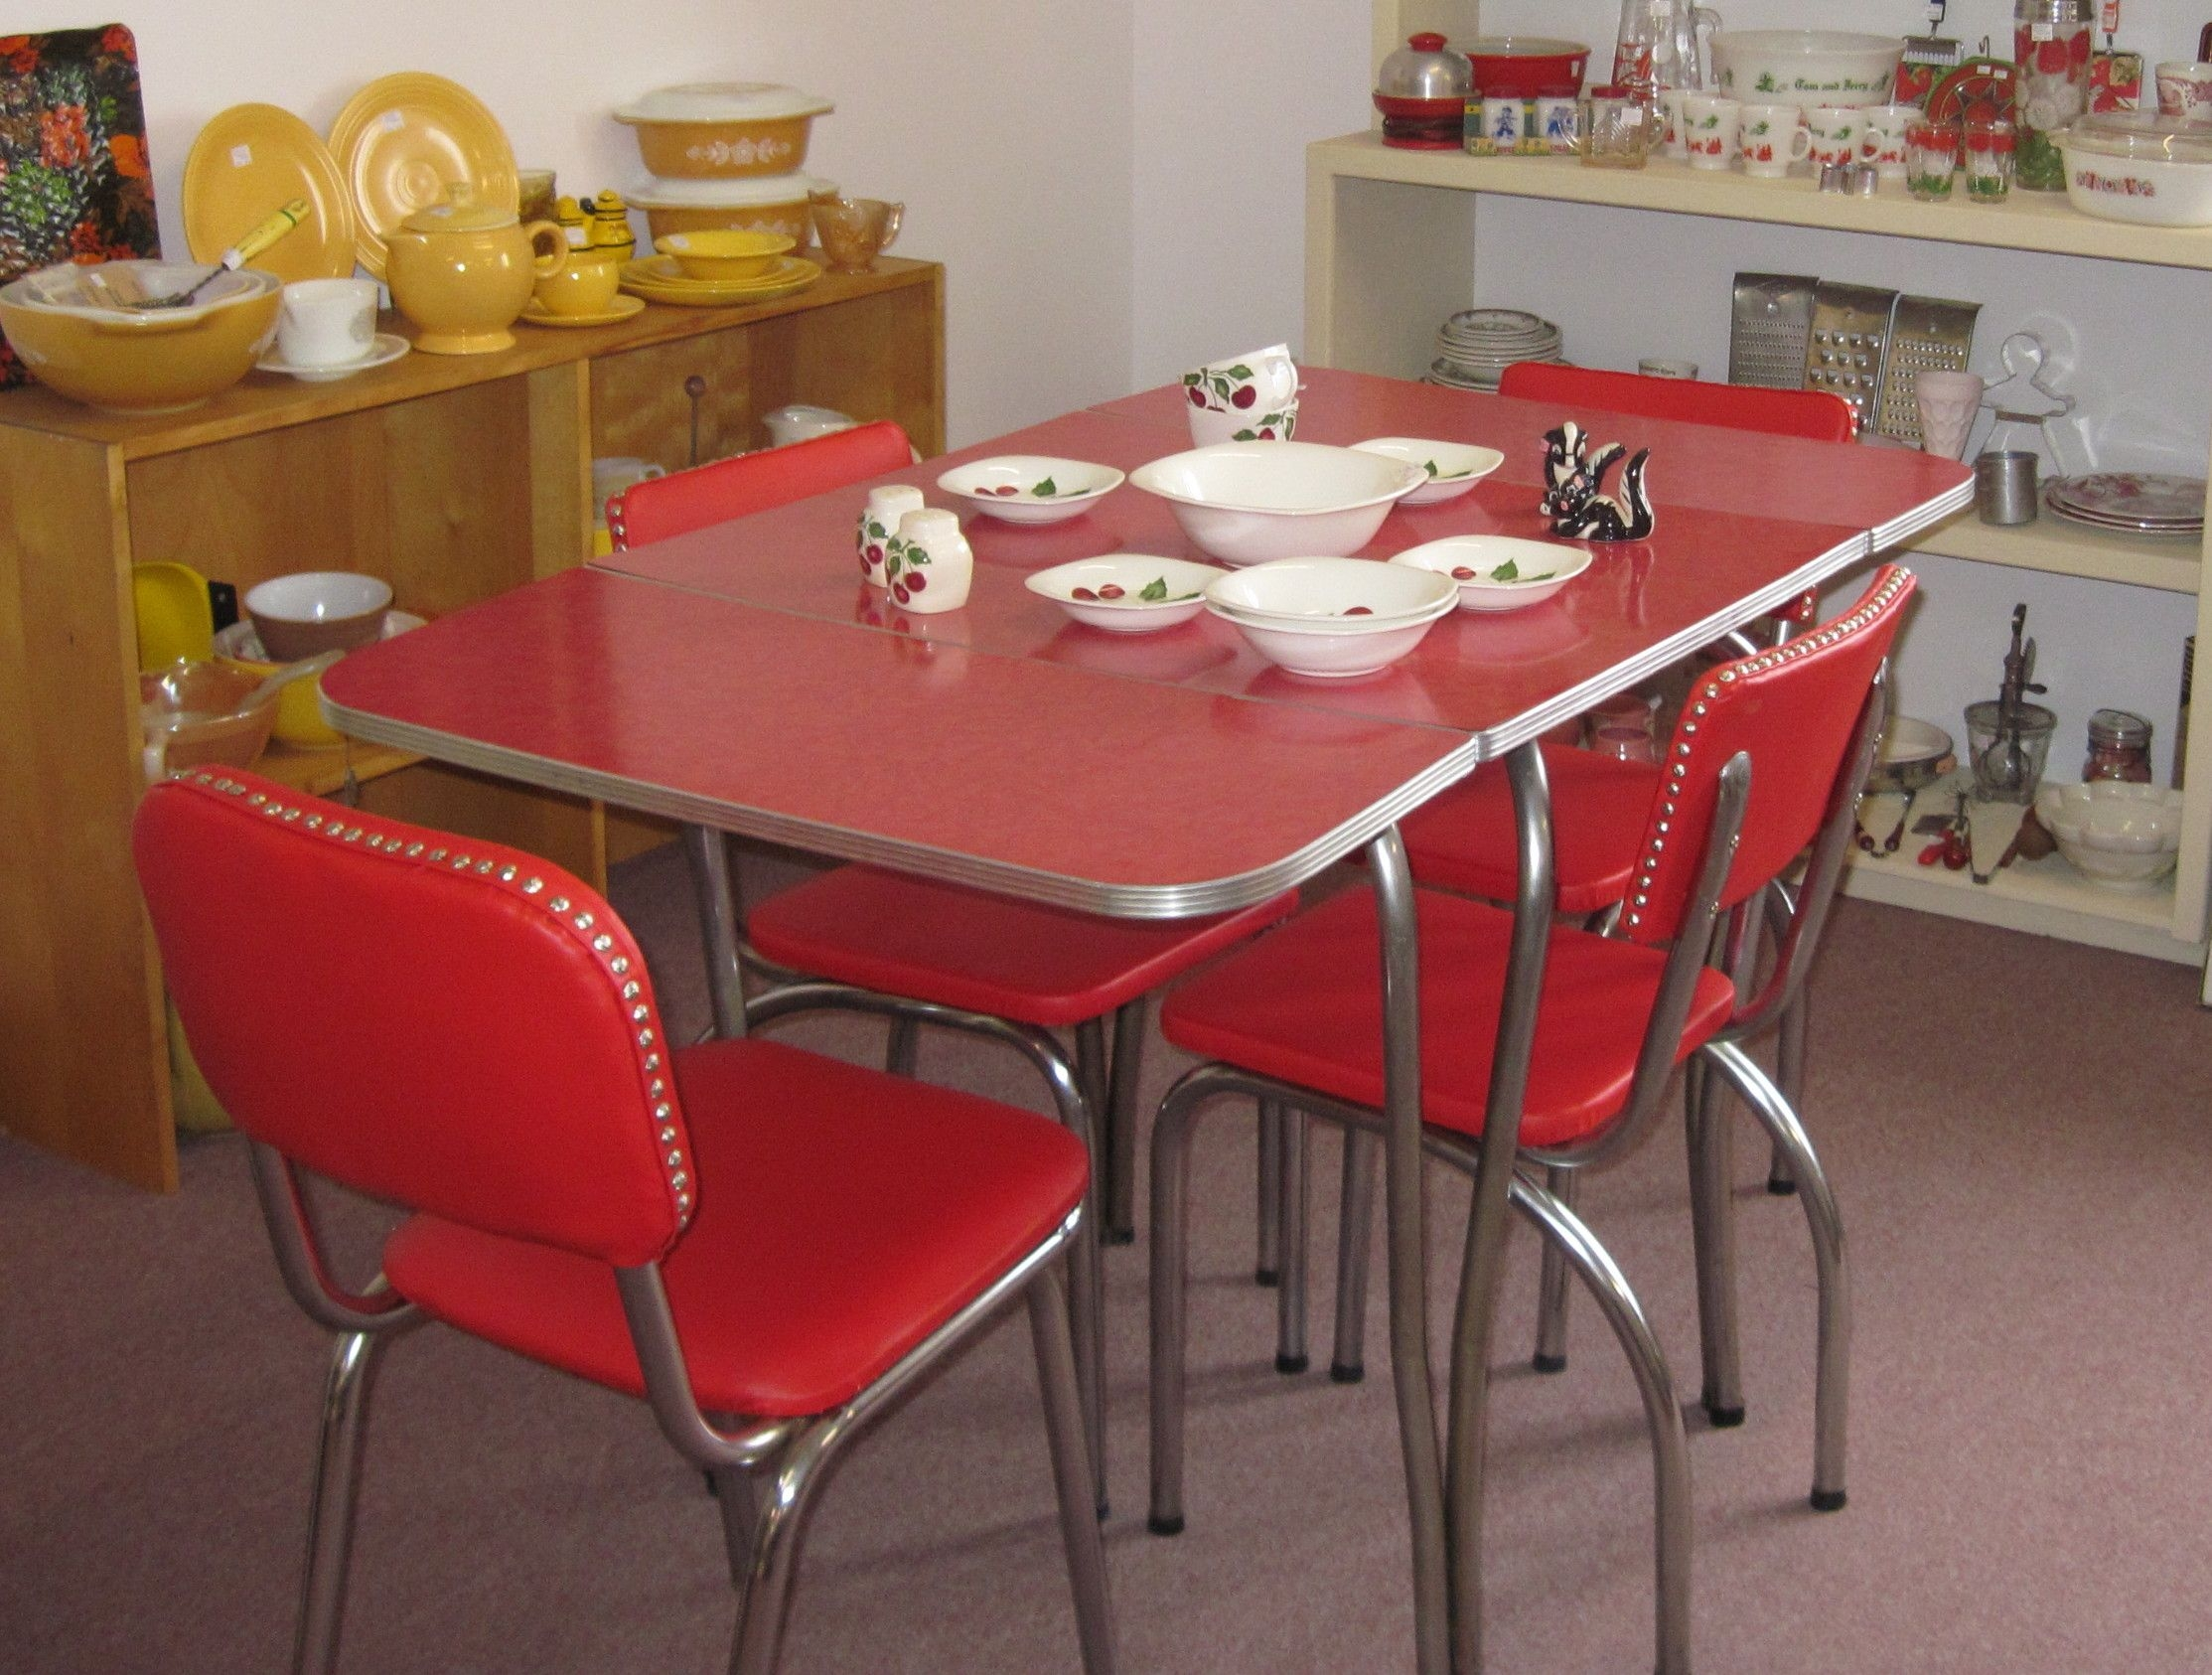 Https Visualhunt Com Retro Kitchen Table And Chairs